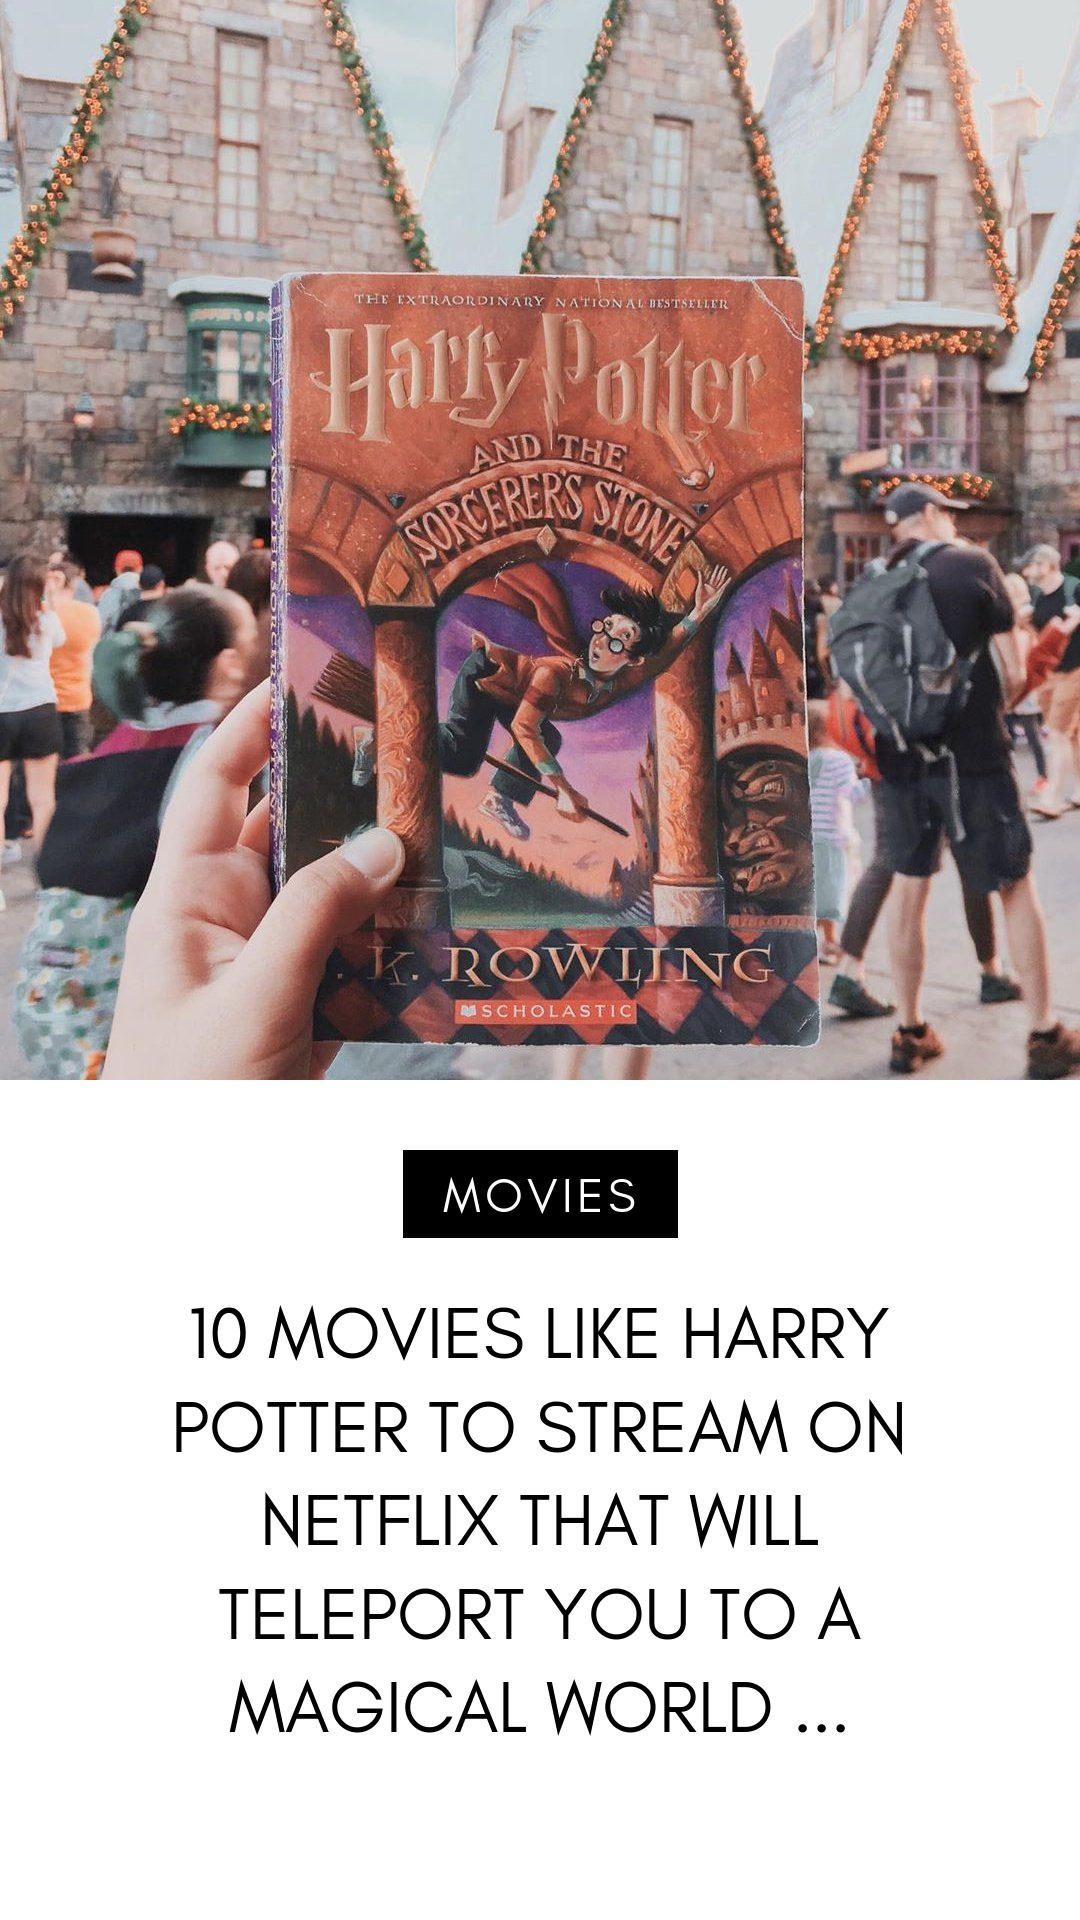 10 Movies Like Harry Potter To Stream On Netflix That Will Teleport You To A Magical World Movies Movie To Watch List Fantasy Movies